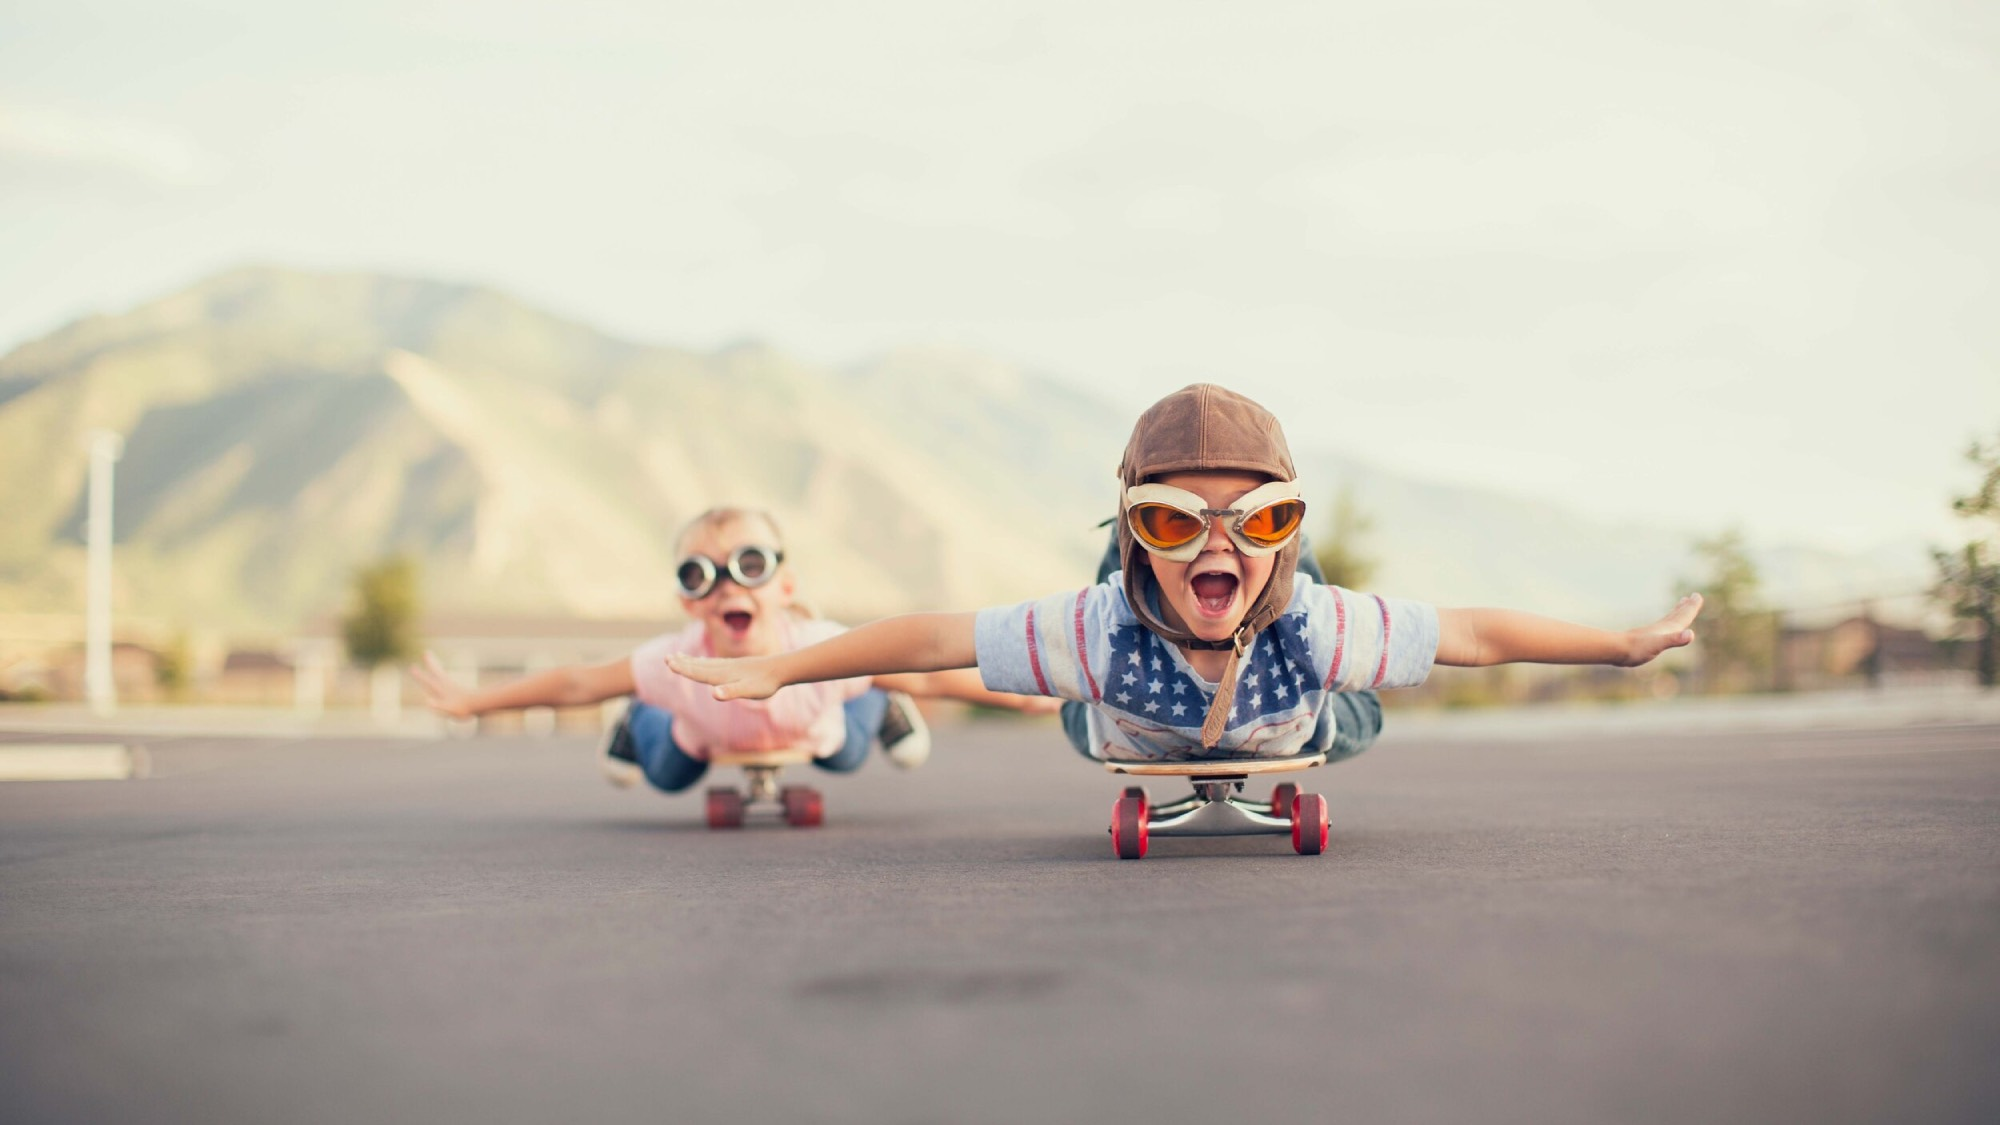 Two kids lying on skateboards and rolling down the street